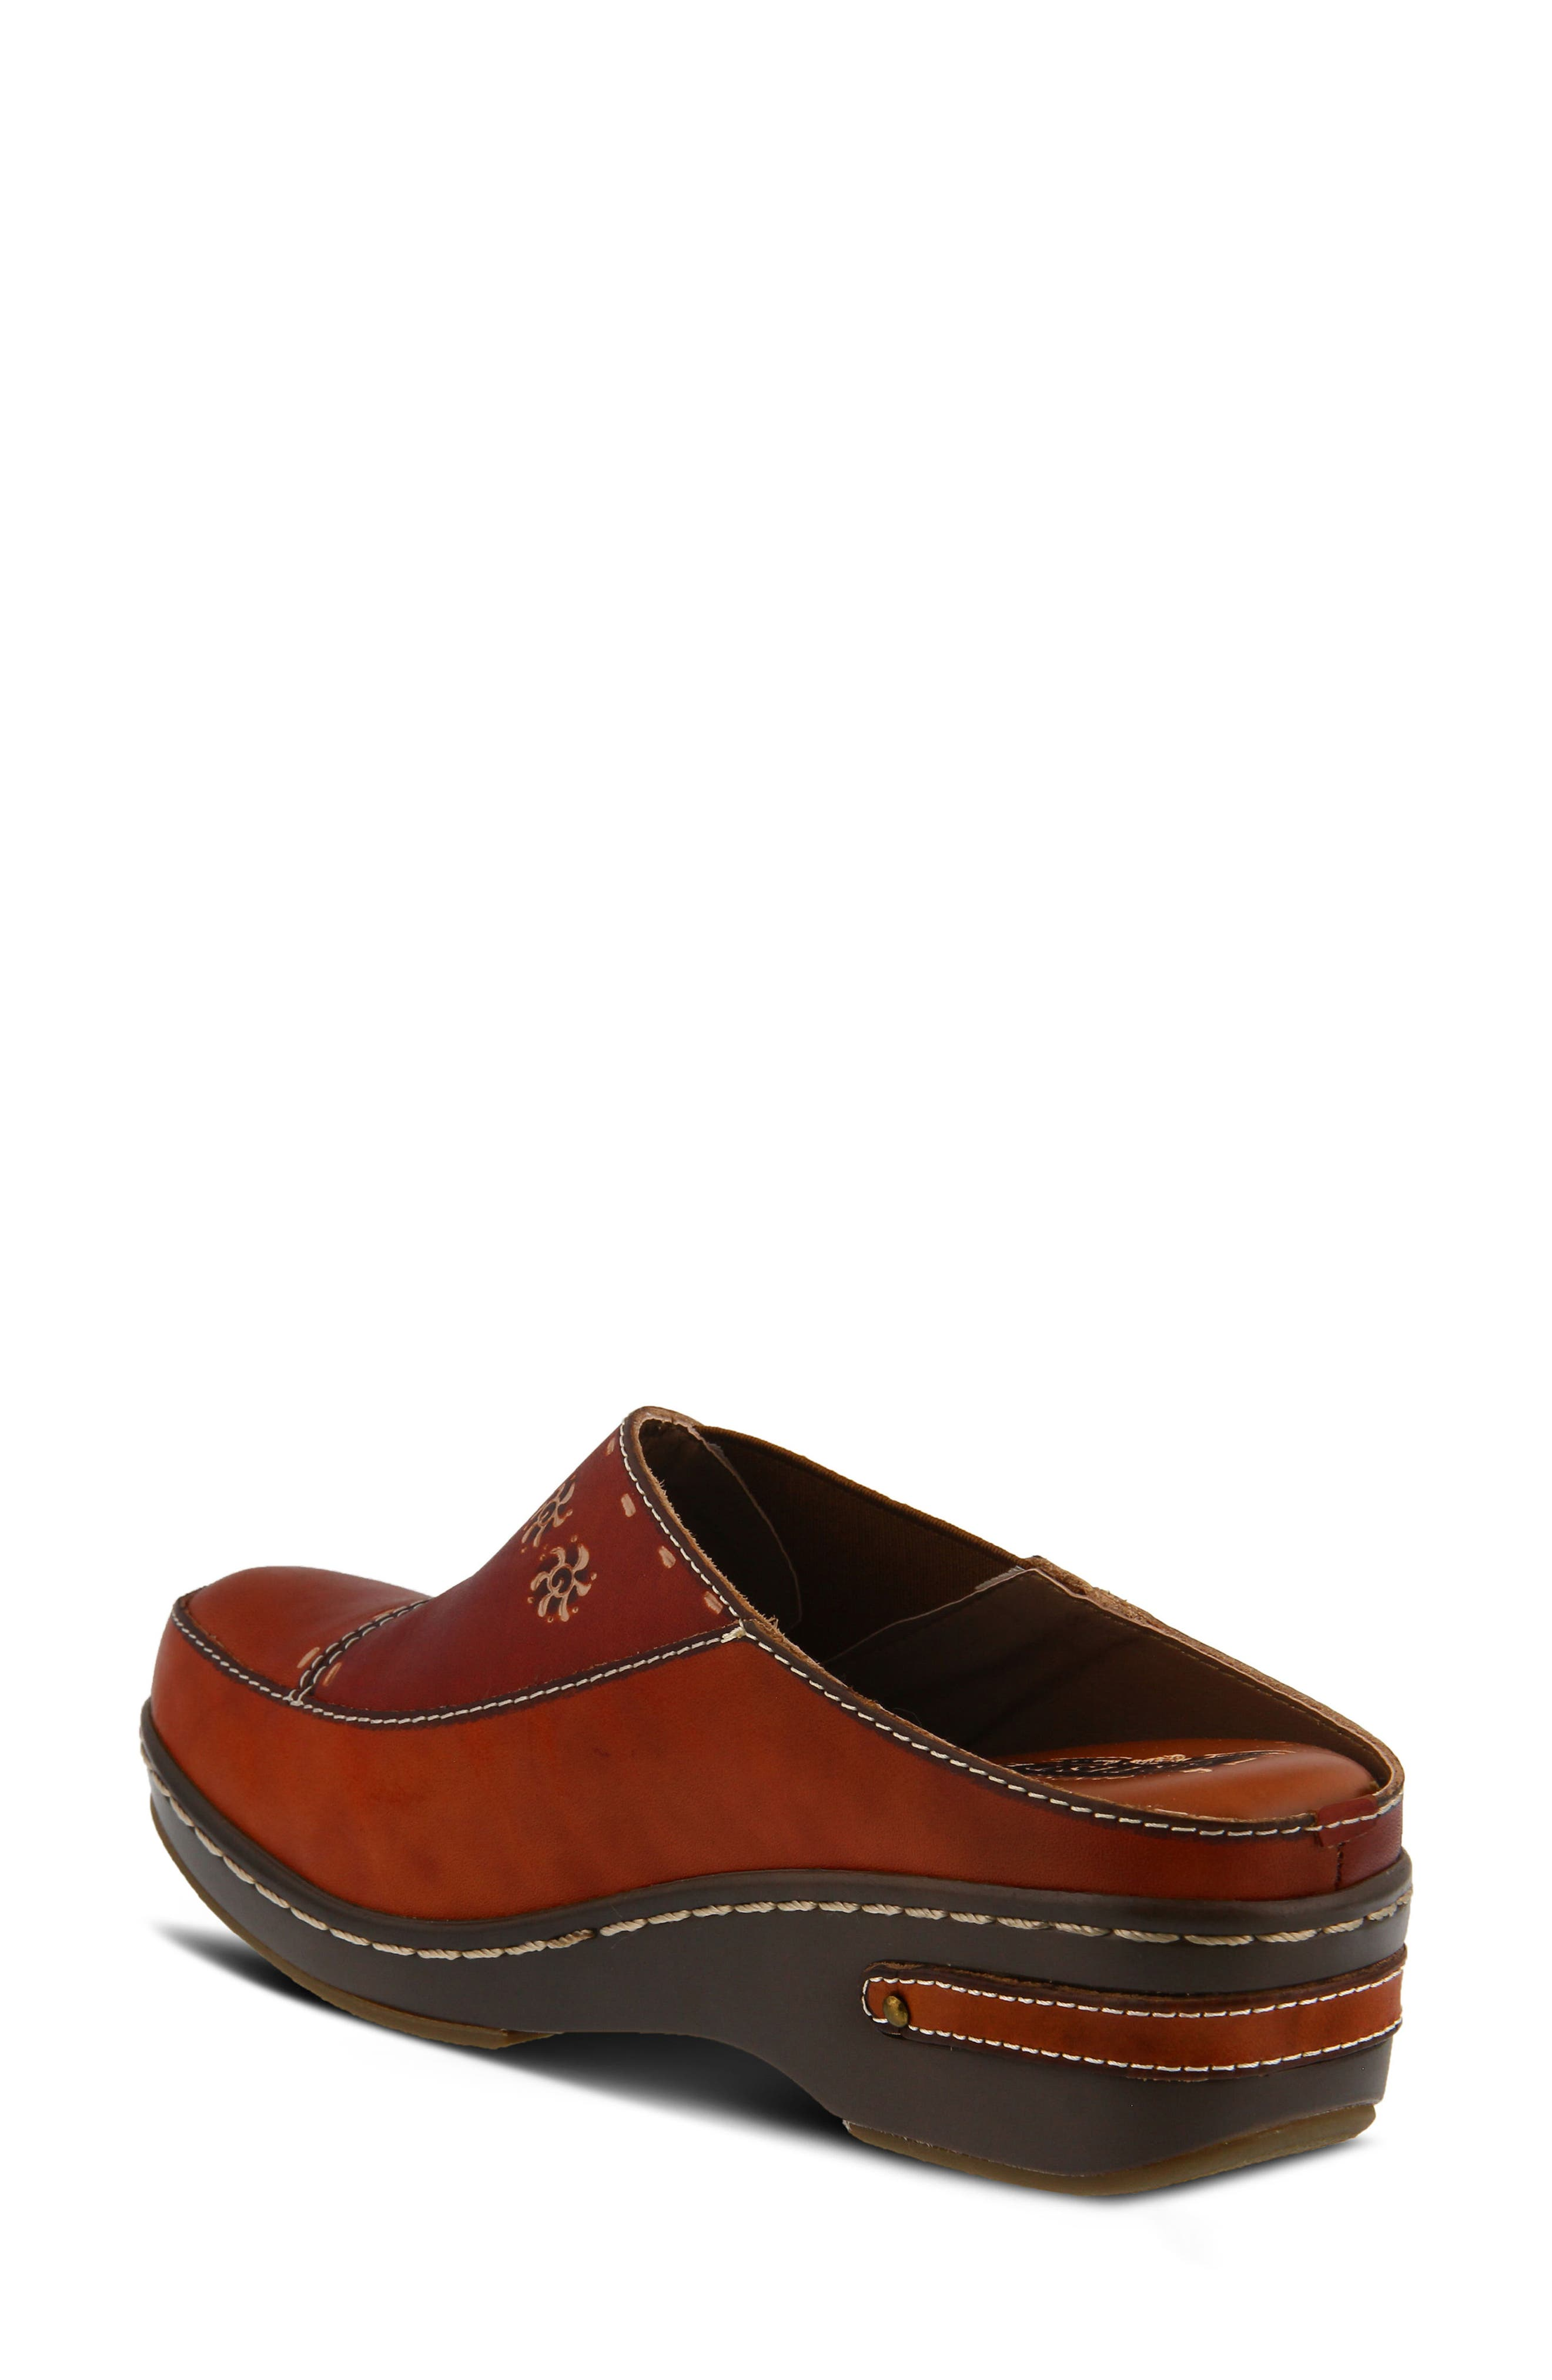 L'Artiste Chino Clog,                             Alternate thumbnail 2, color,                             Camel Leather